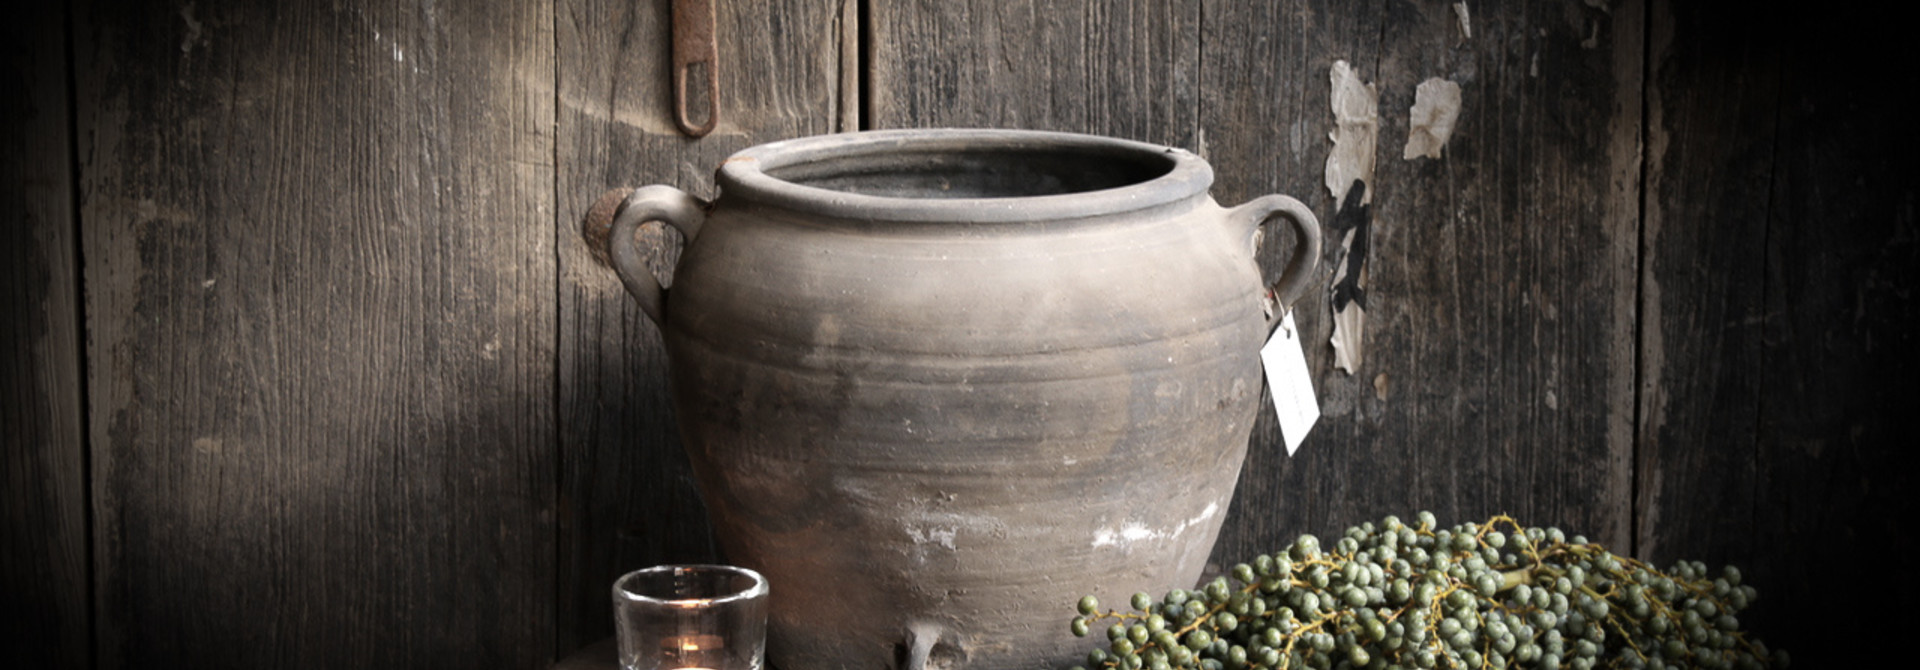 Gray earthenware jugs and bowls